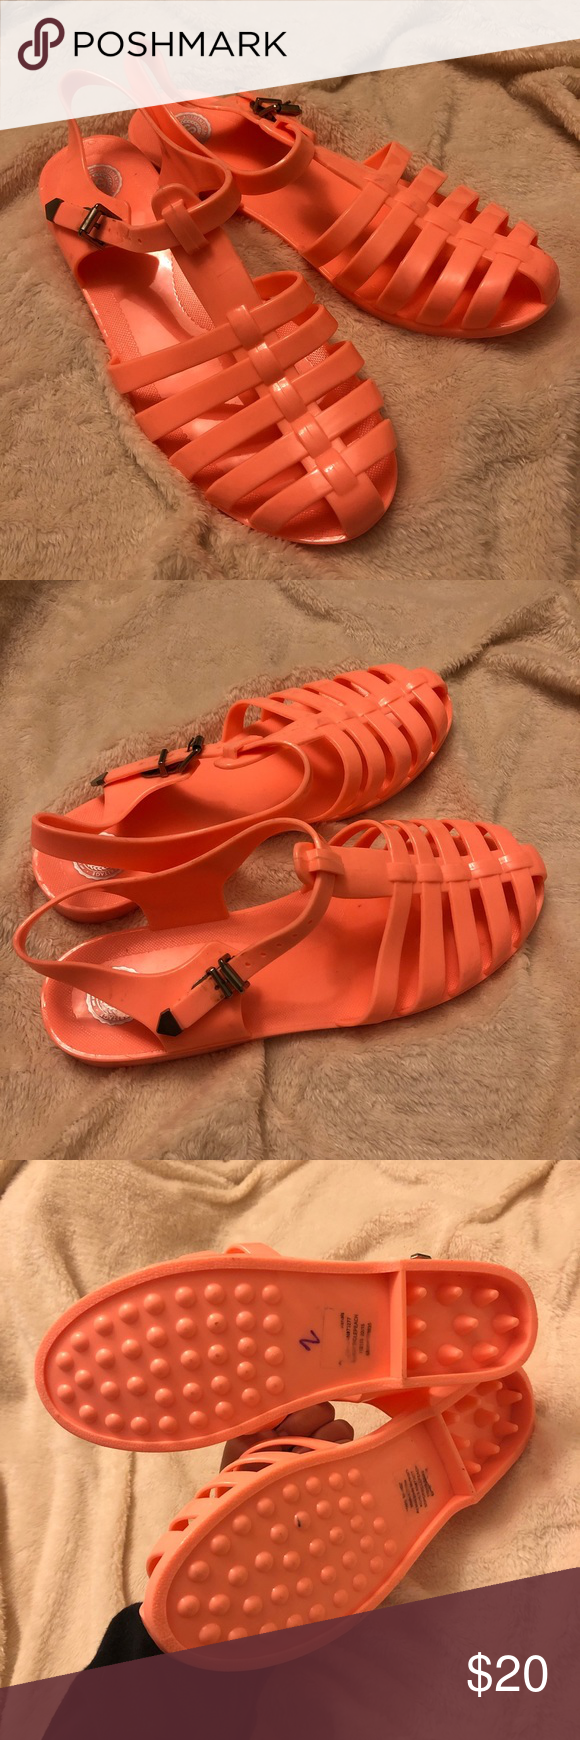 Peach Jelly Shoes Size 10 Kohl's SO